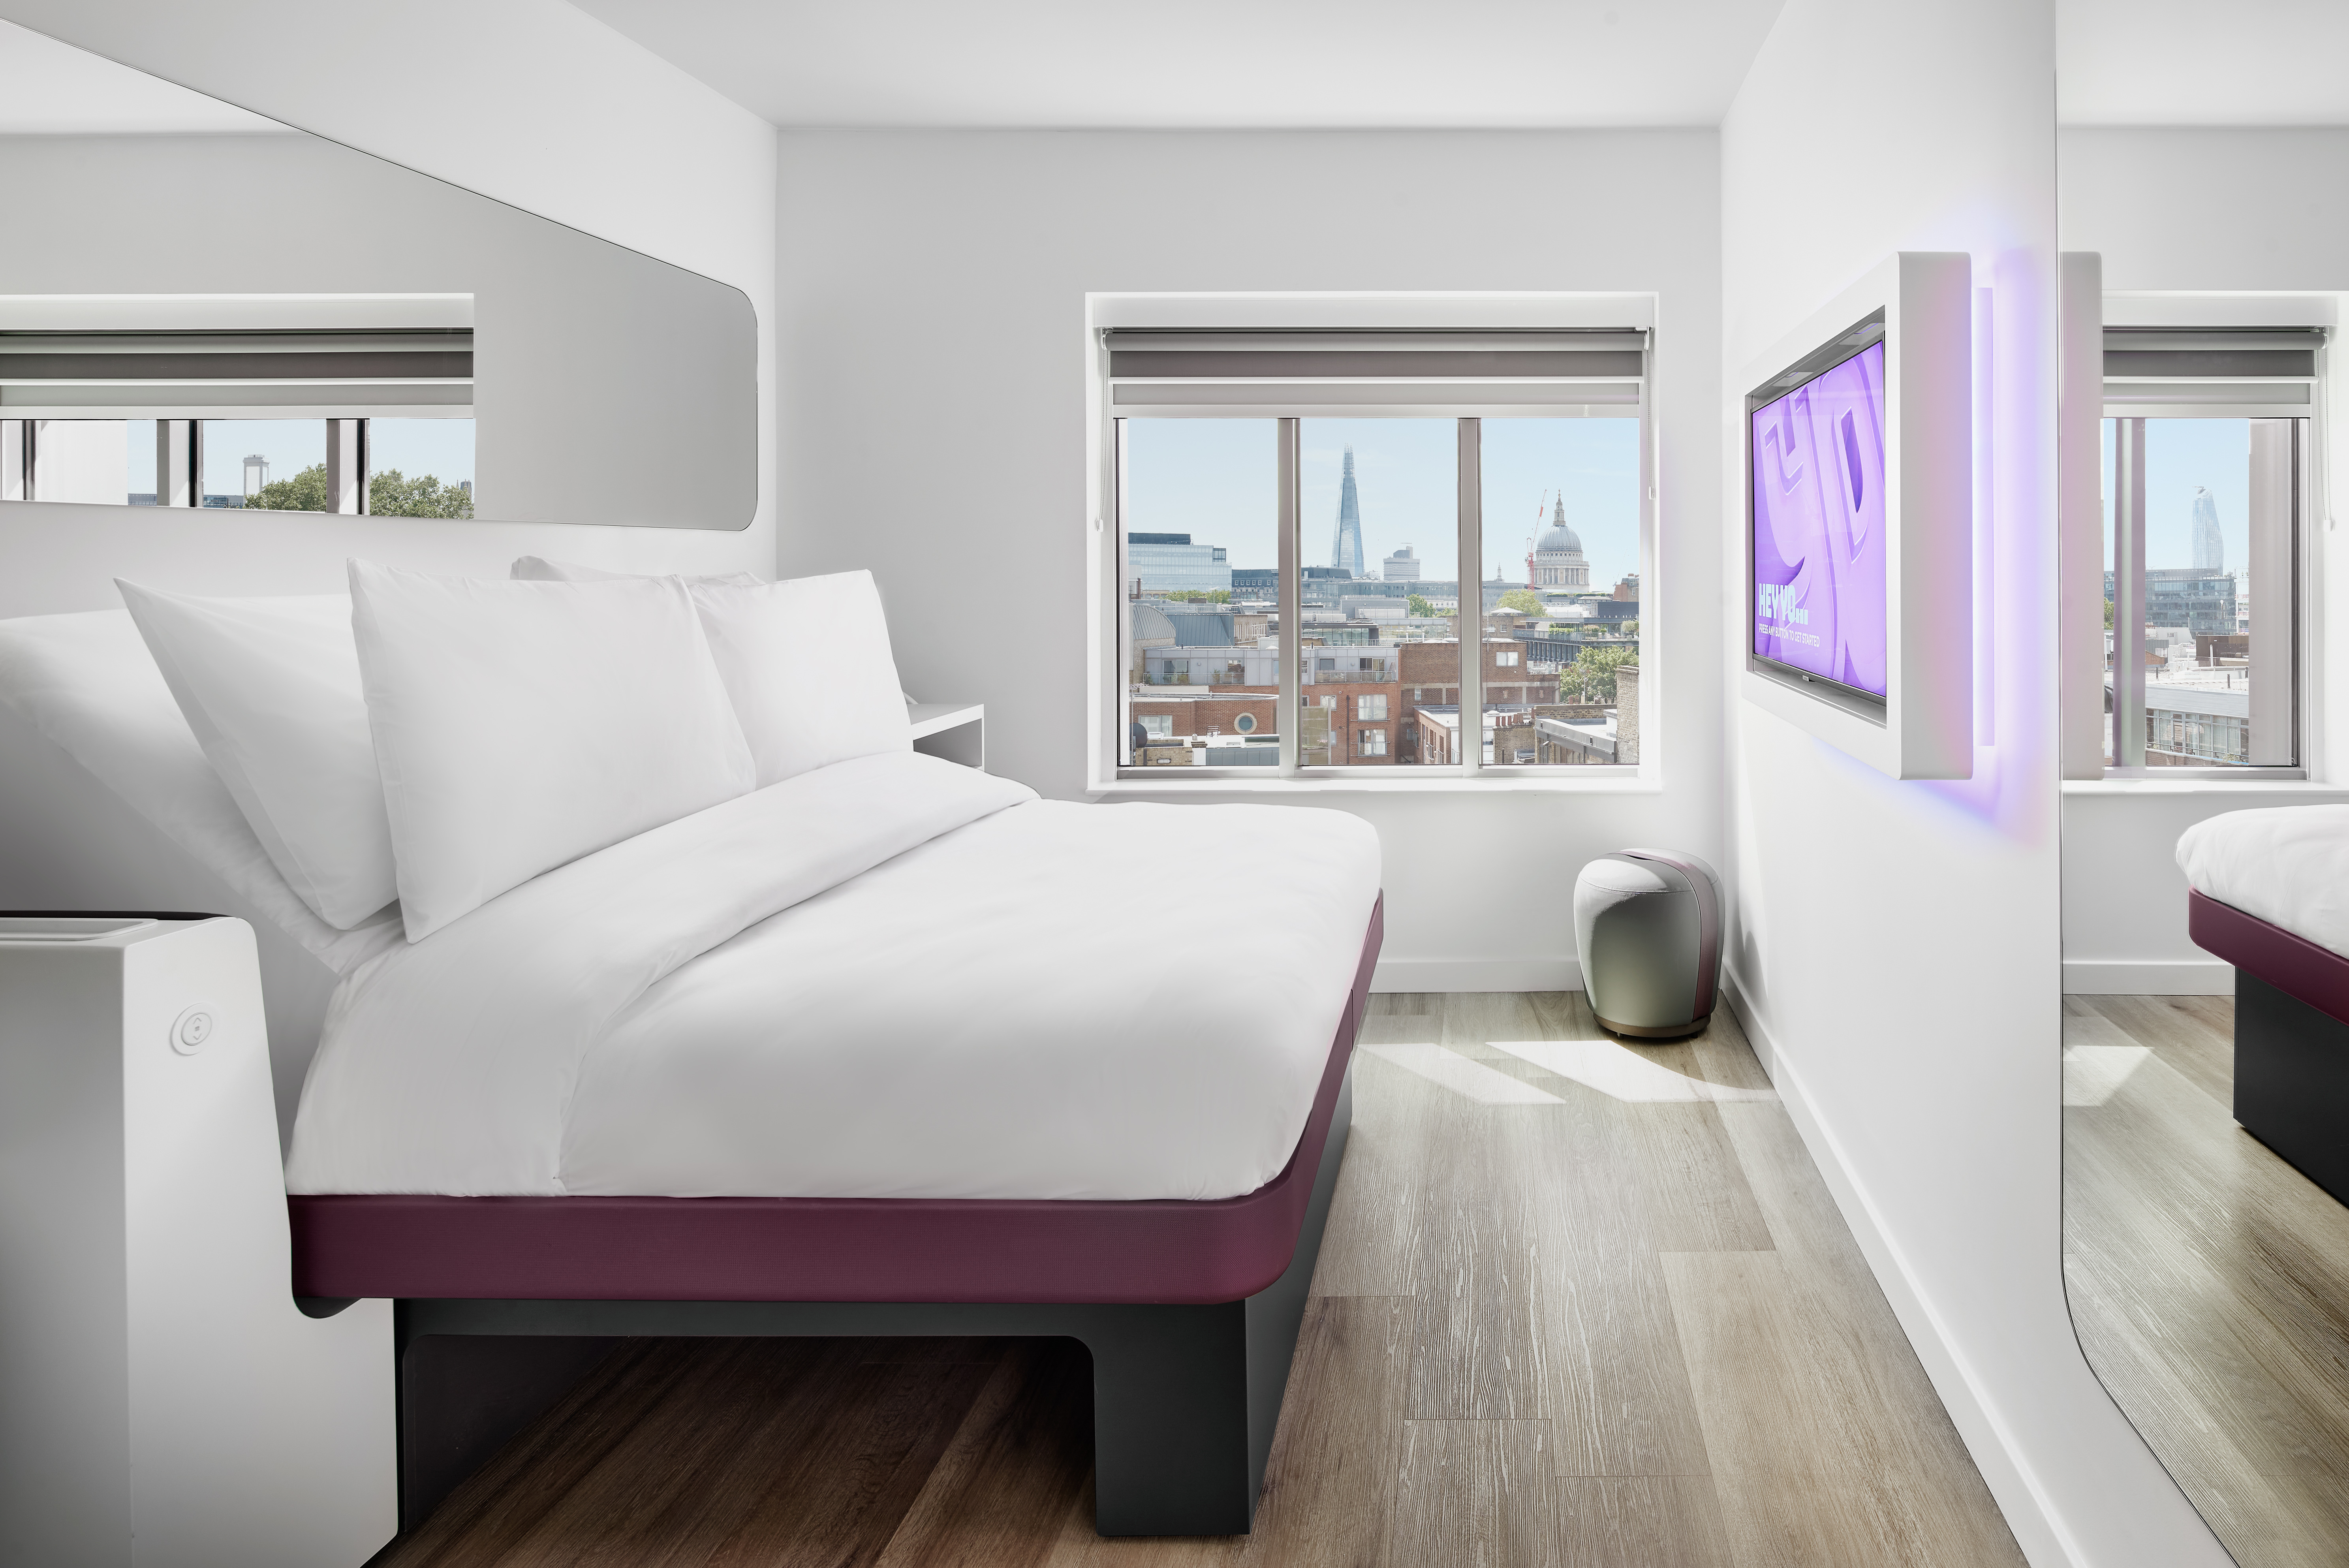 YOTEL's smart and compact cabins have adjustable beds, flatscreen TVs and rainfall showers in each bathroom